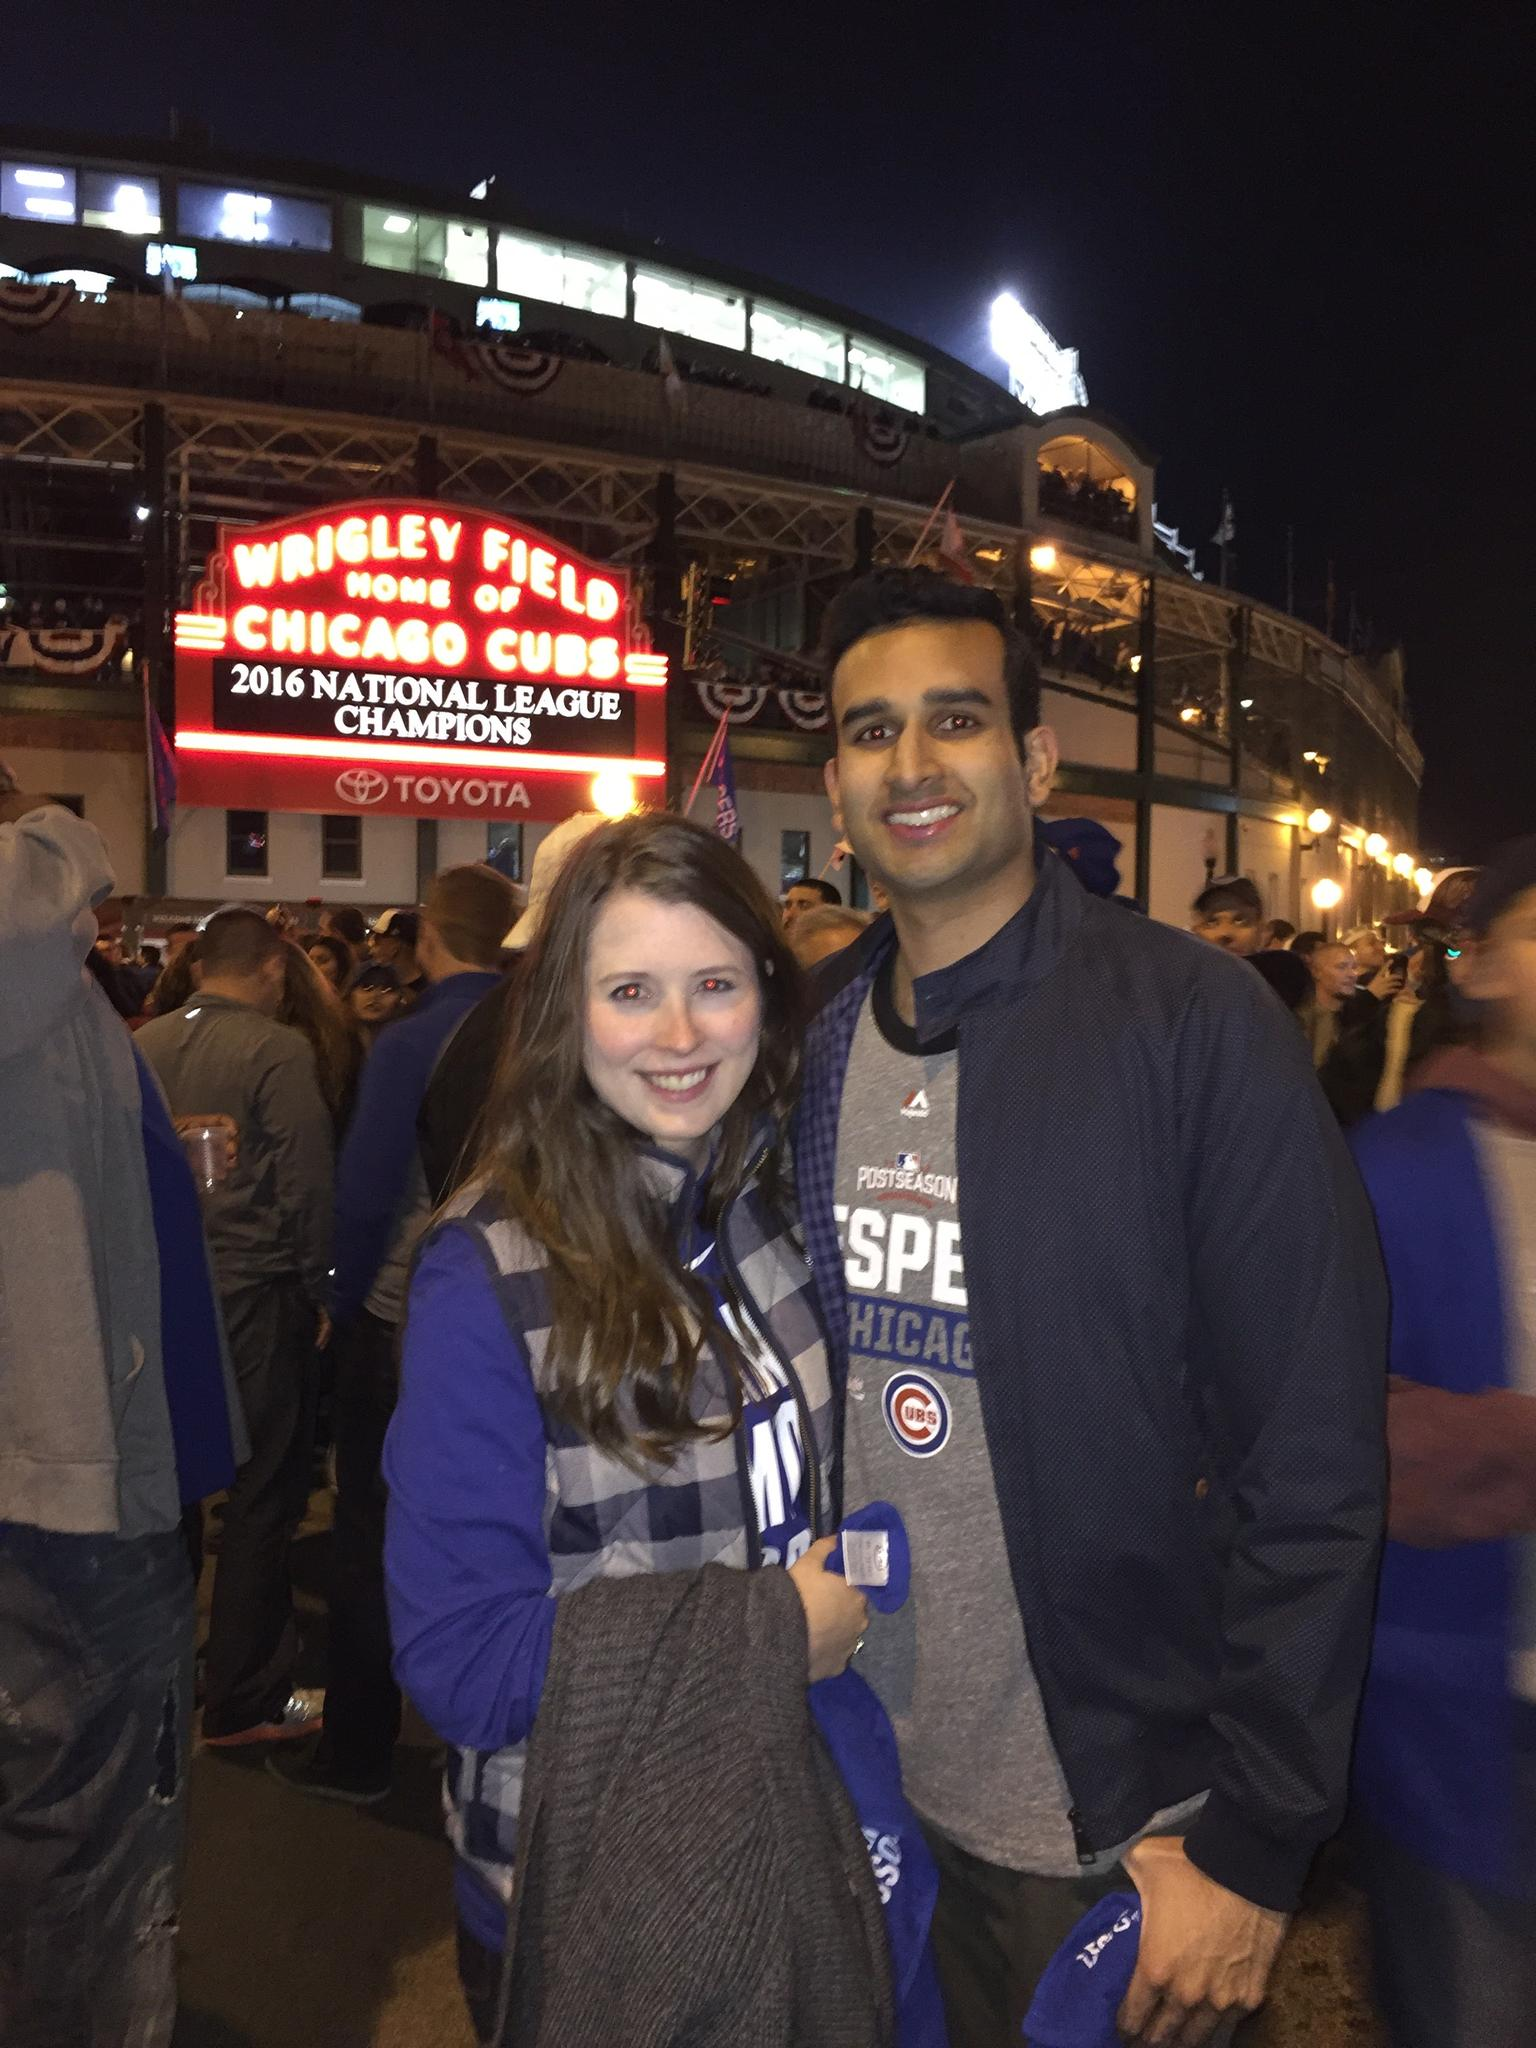 Watching the Chicago Cubs make baseball history with their curse breaking win over the Dodgers!